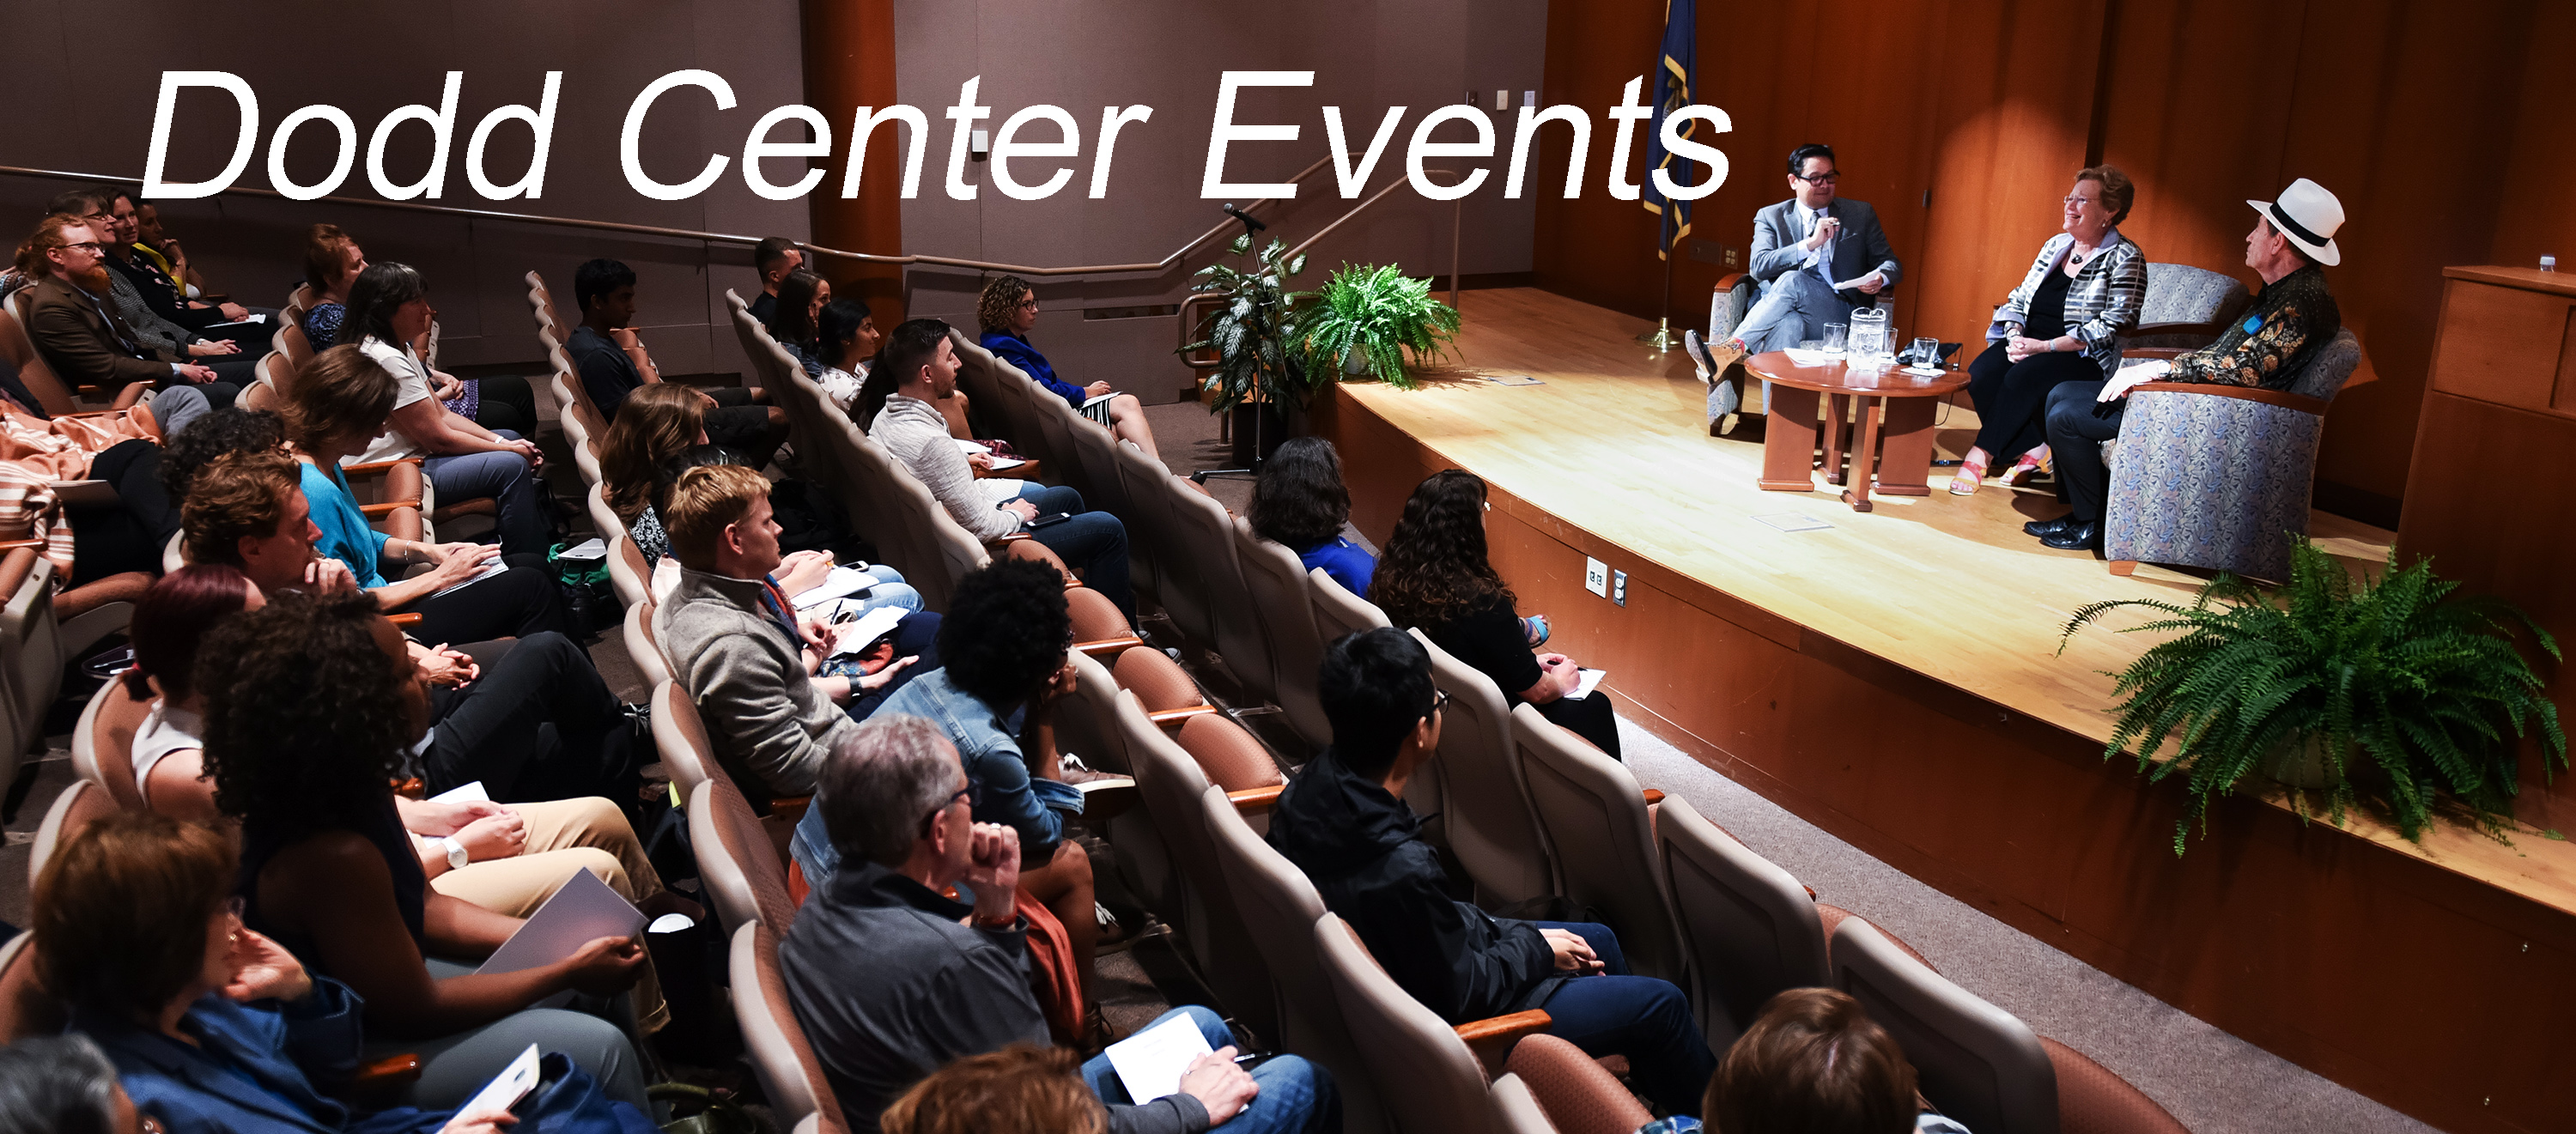 Dodd Center Events